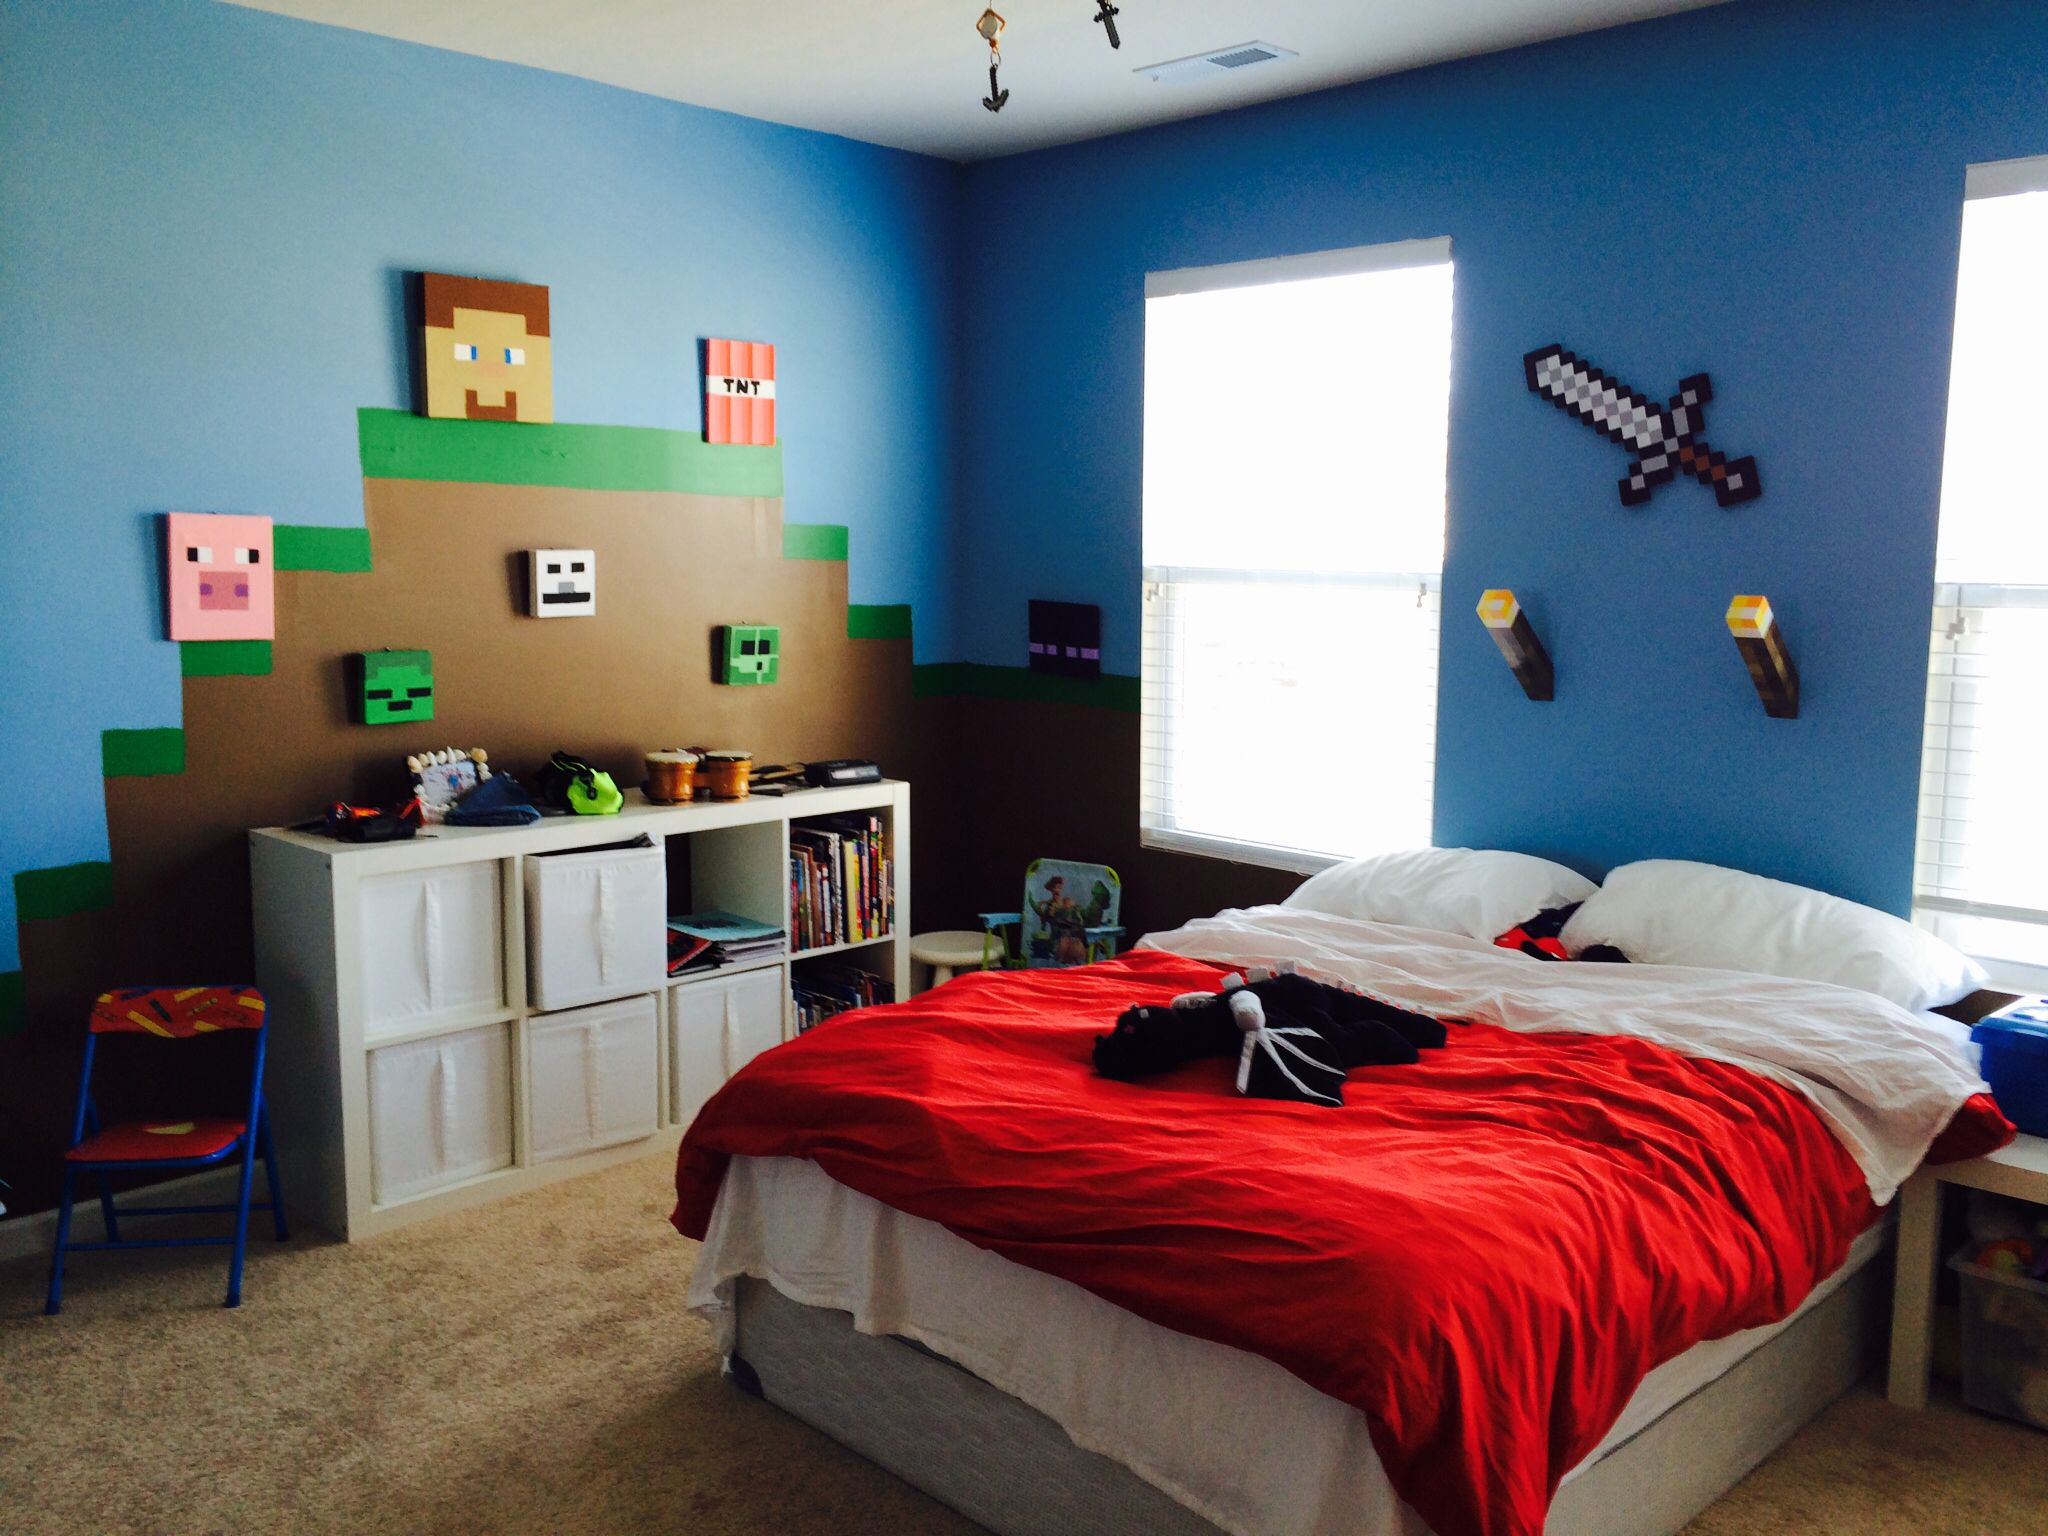 7 More Awesome Minecraft Bedrooms We Want! | Gearcraft